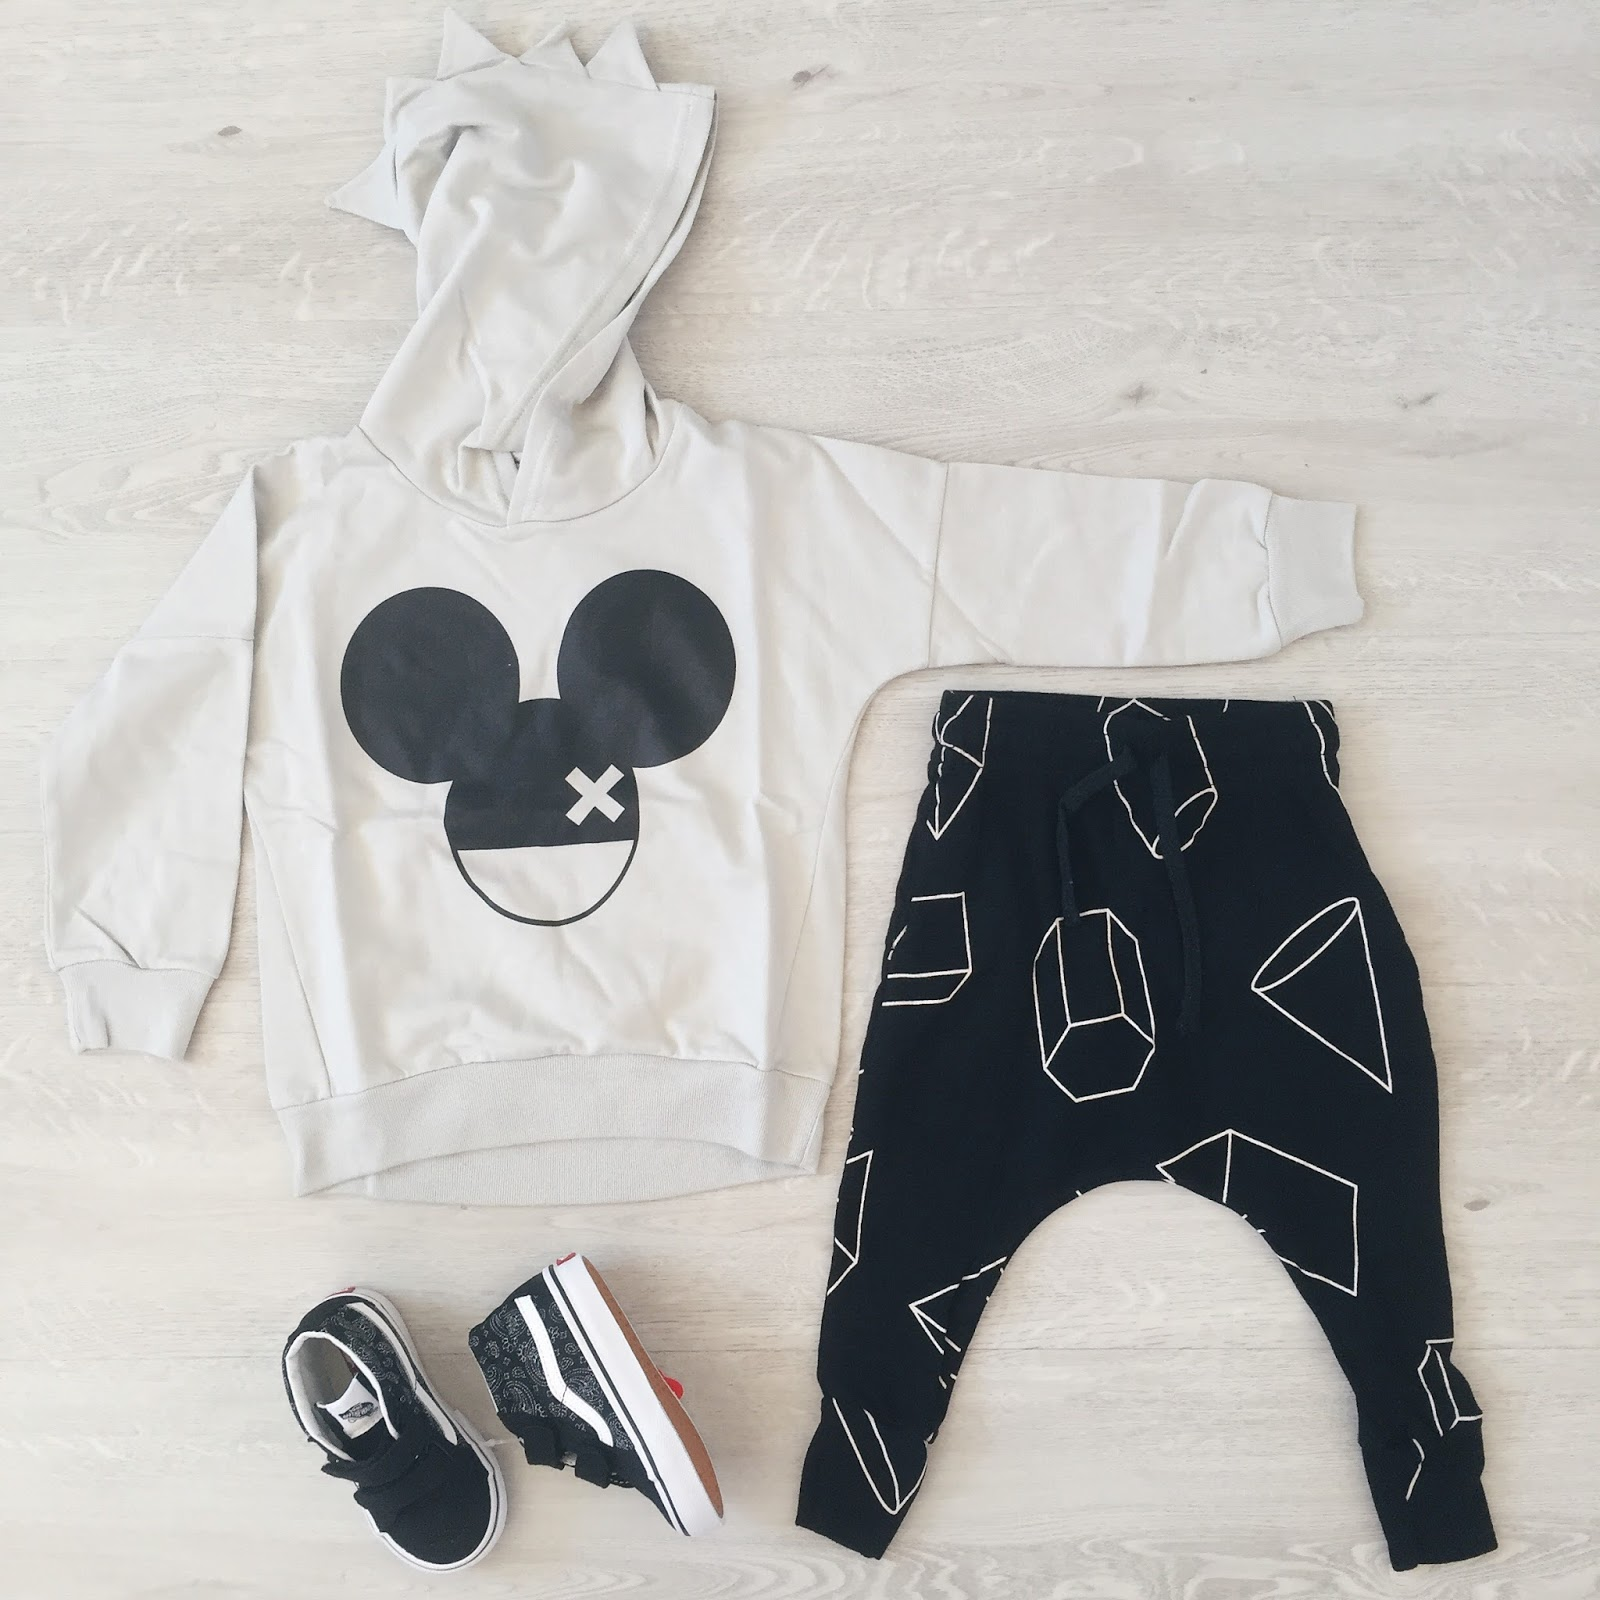 Some Flat Lay Kids Amp Baby Outfit Inspiration Yellow Dandy